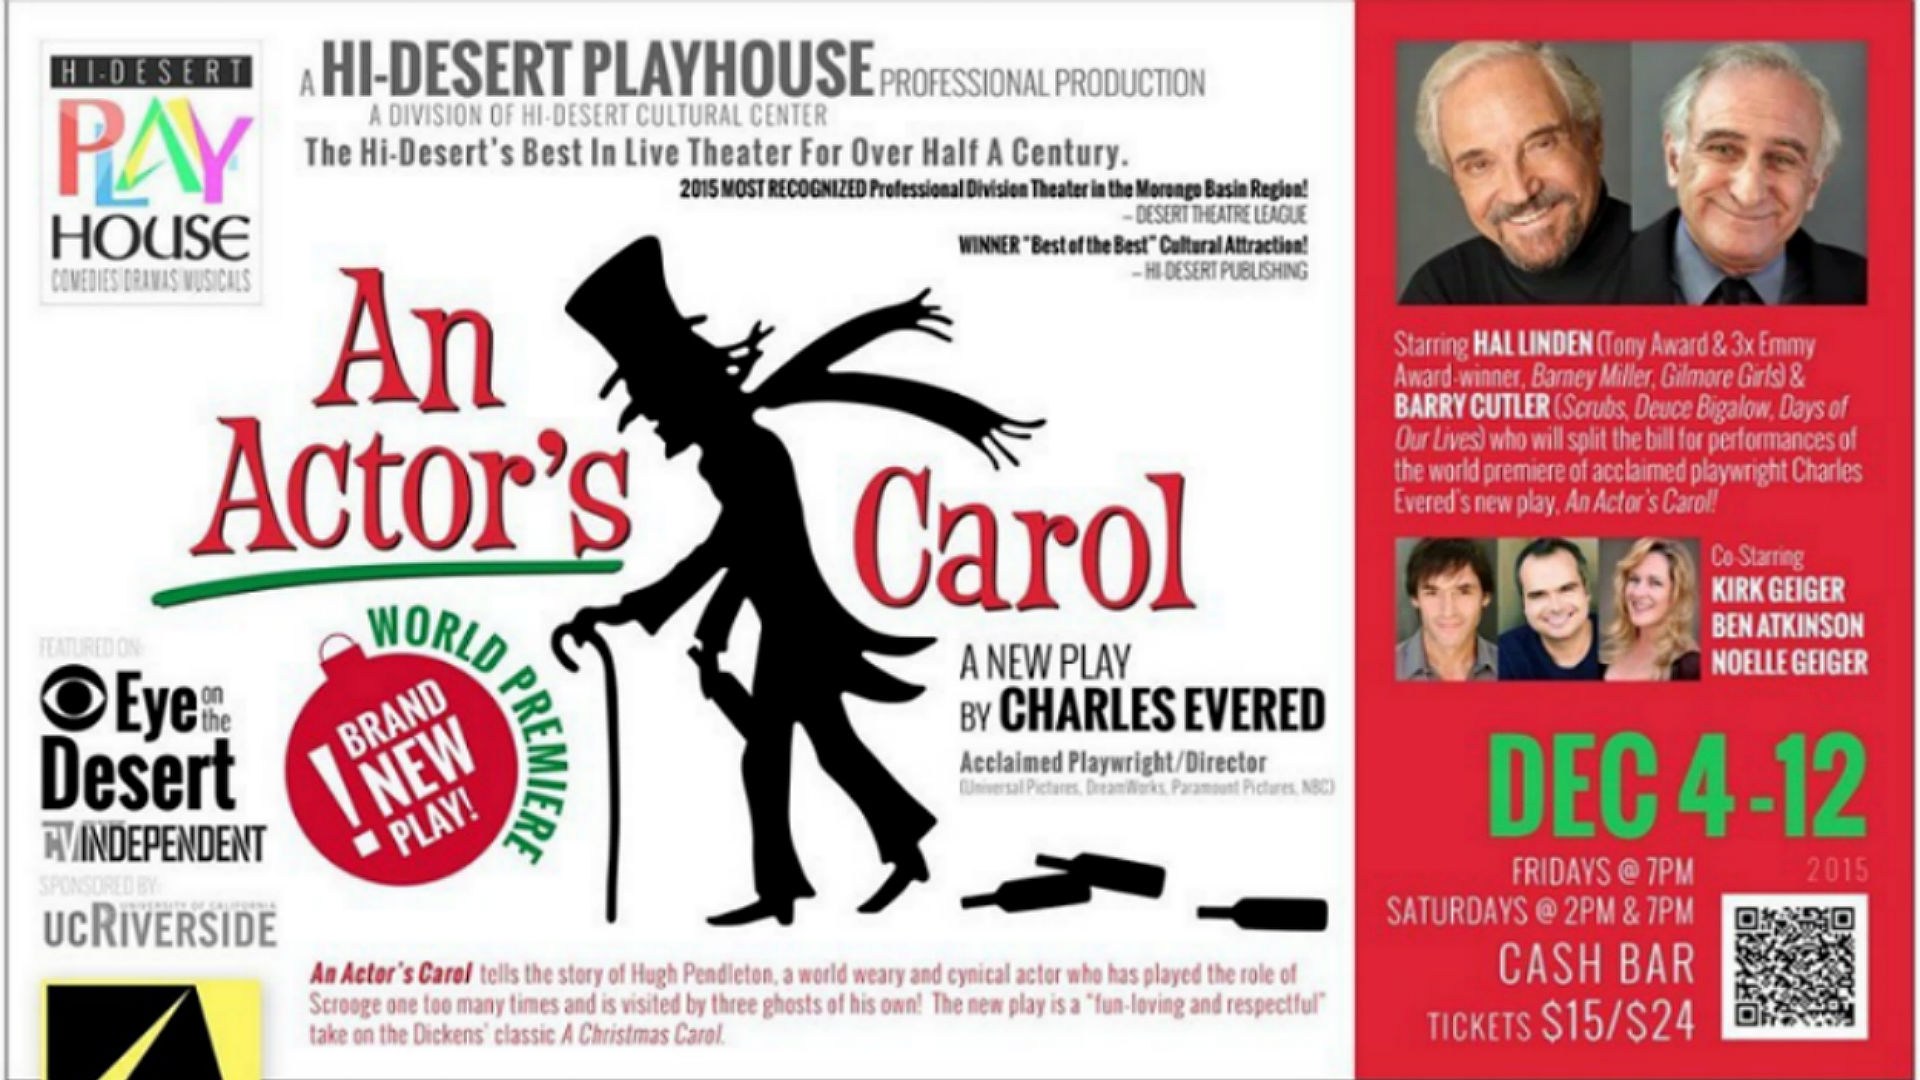 An Actors Carol World Premiere Stage Production